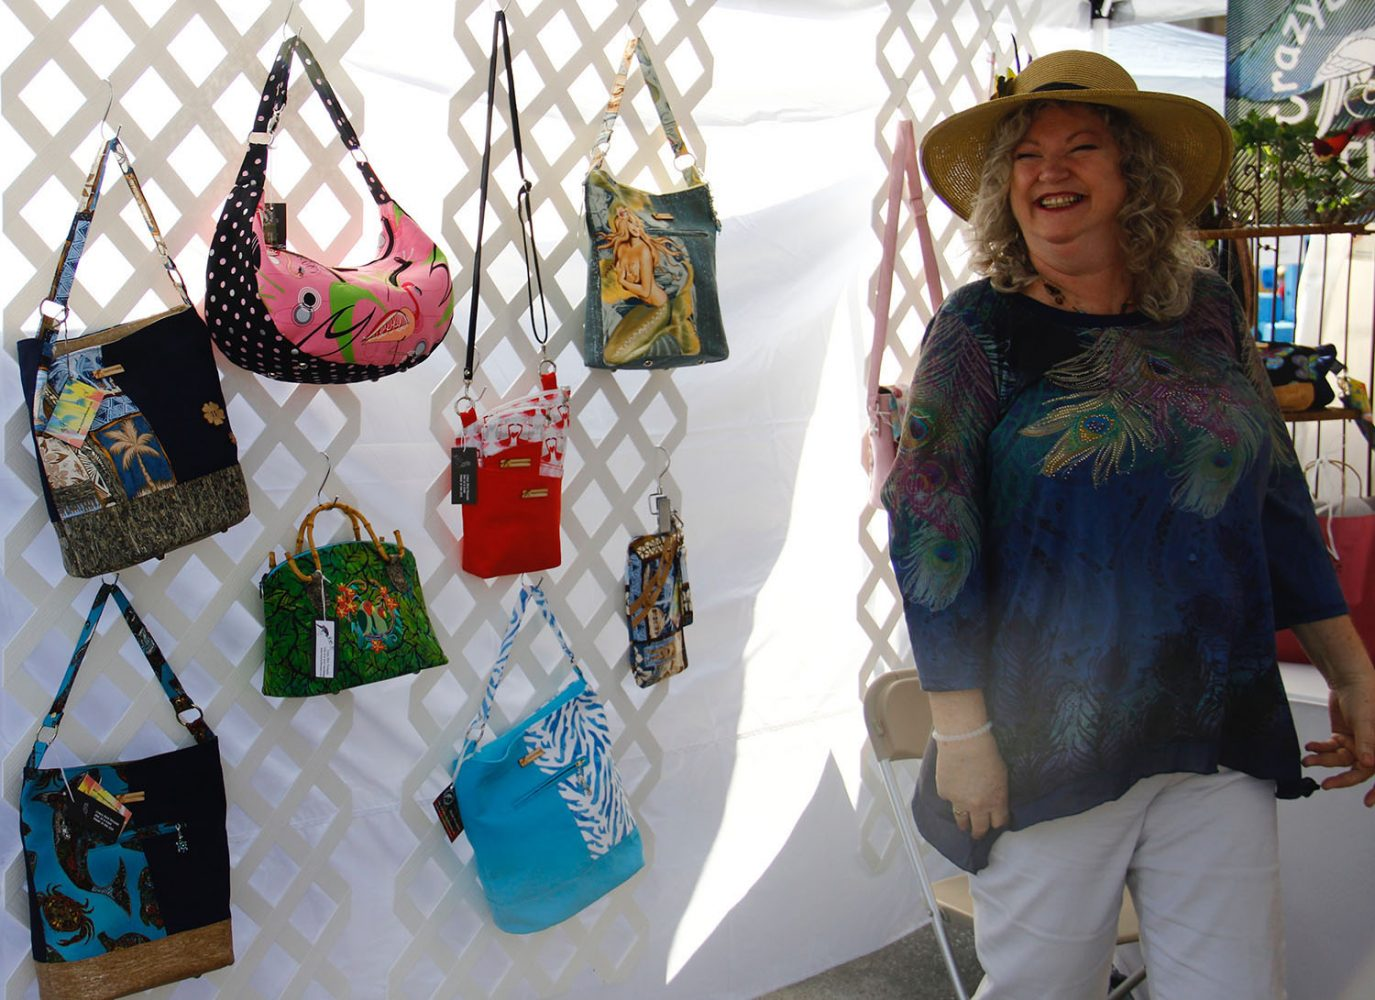 Karan Newman, a local artist, crafts purses inspired by her love of birds and of the Florida Keys. (Photo by Lauren Gandy/WUFT News)